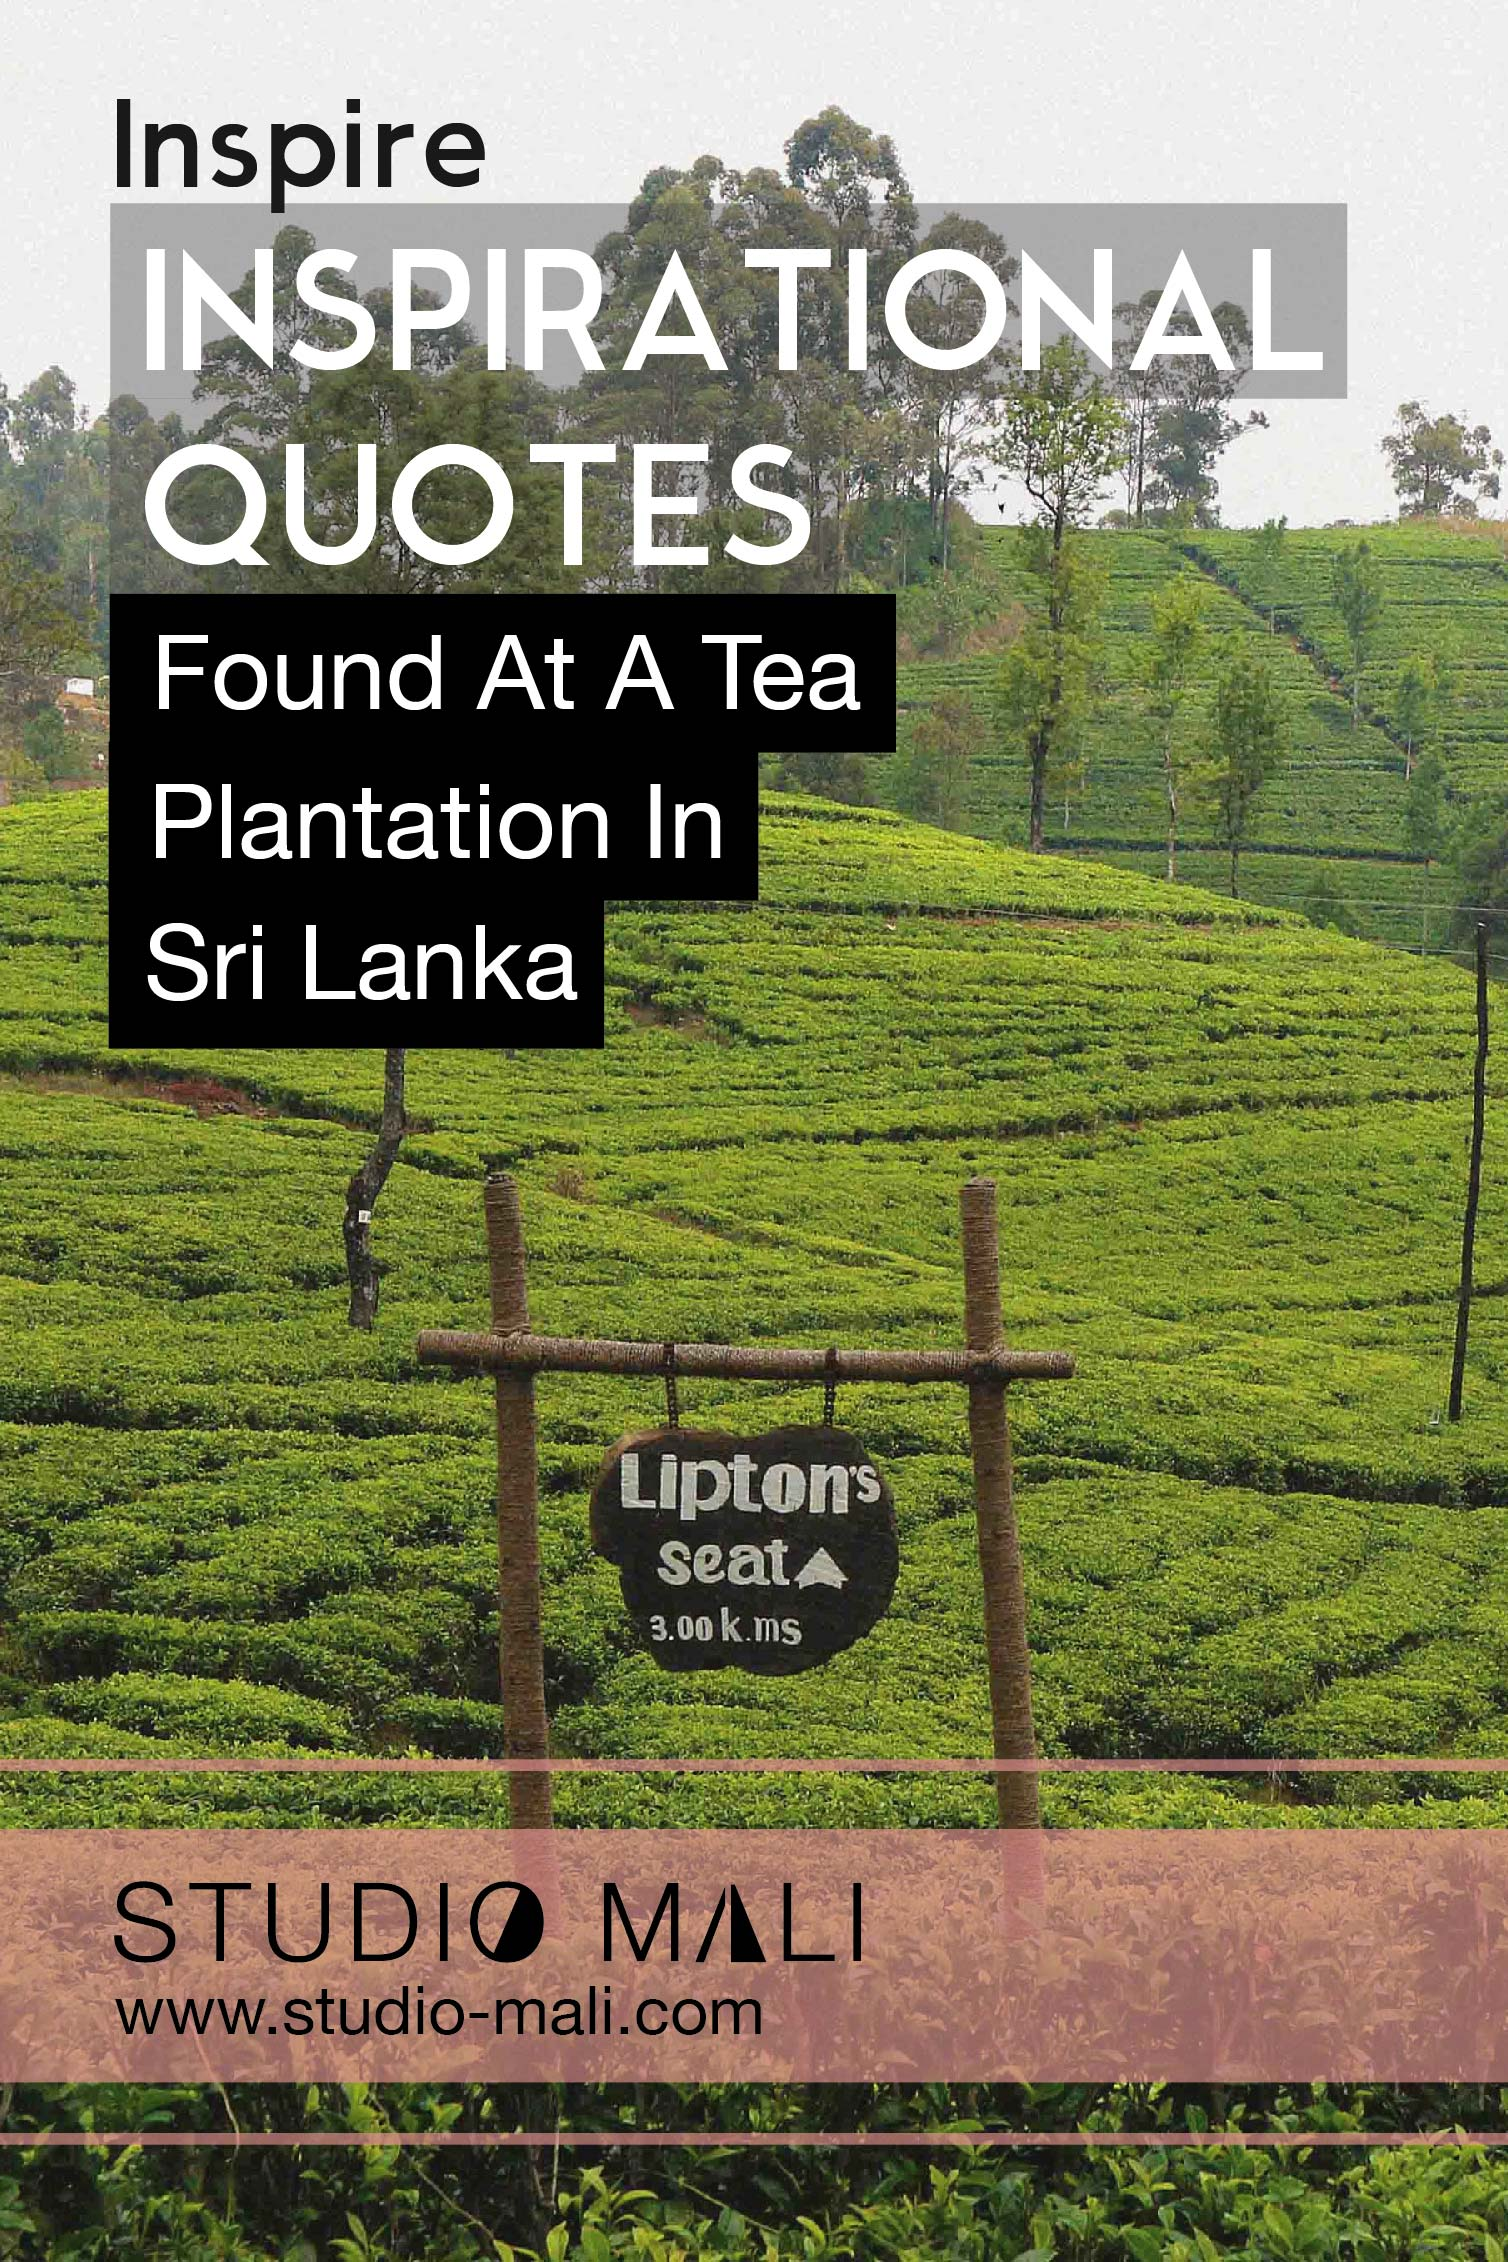 Inspirational Quotes Found At A Tea Plantation In Sri Lanka, by Studio Mali.jpg